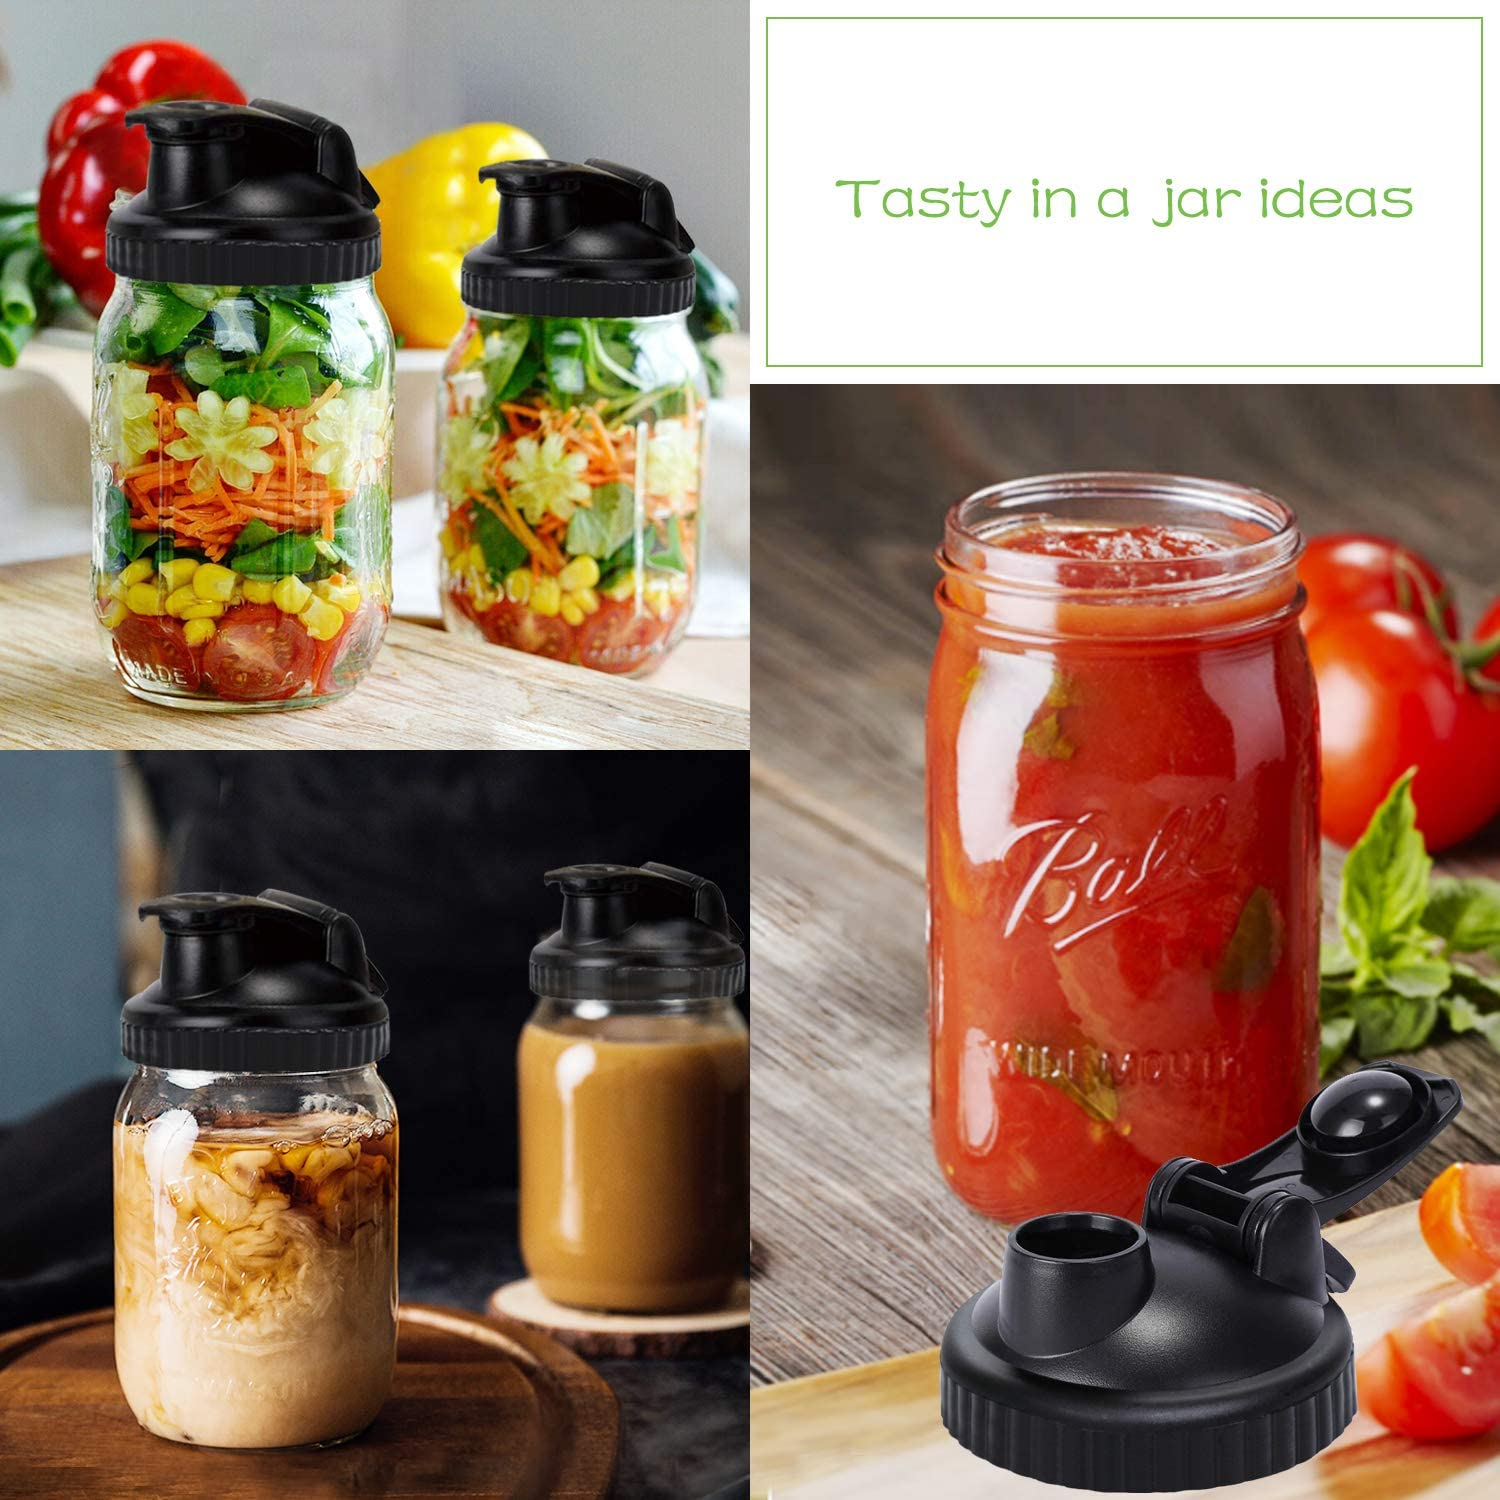 Mason Jar Lids Spill Proof and Made with Safe Regular Mouth Serving and Storage No-Break Materials 4 Pack ball jars lid for Preparing